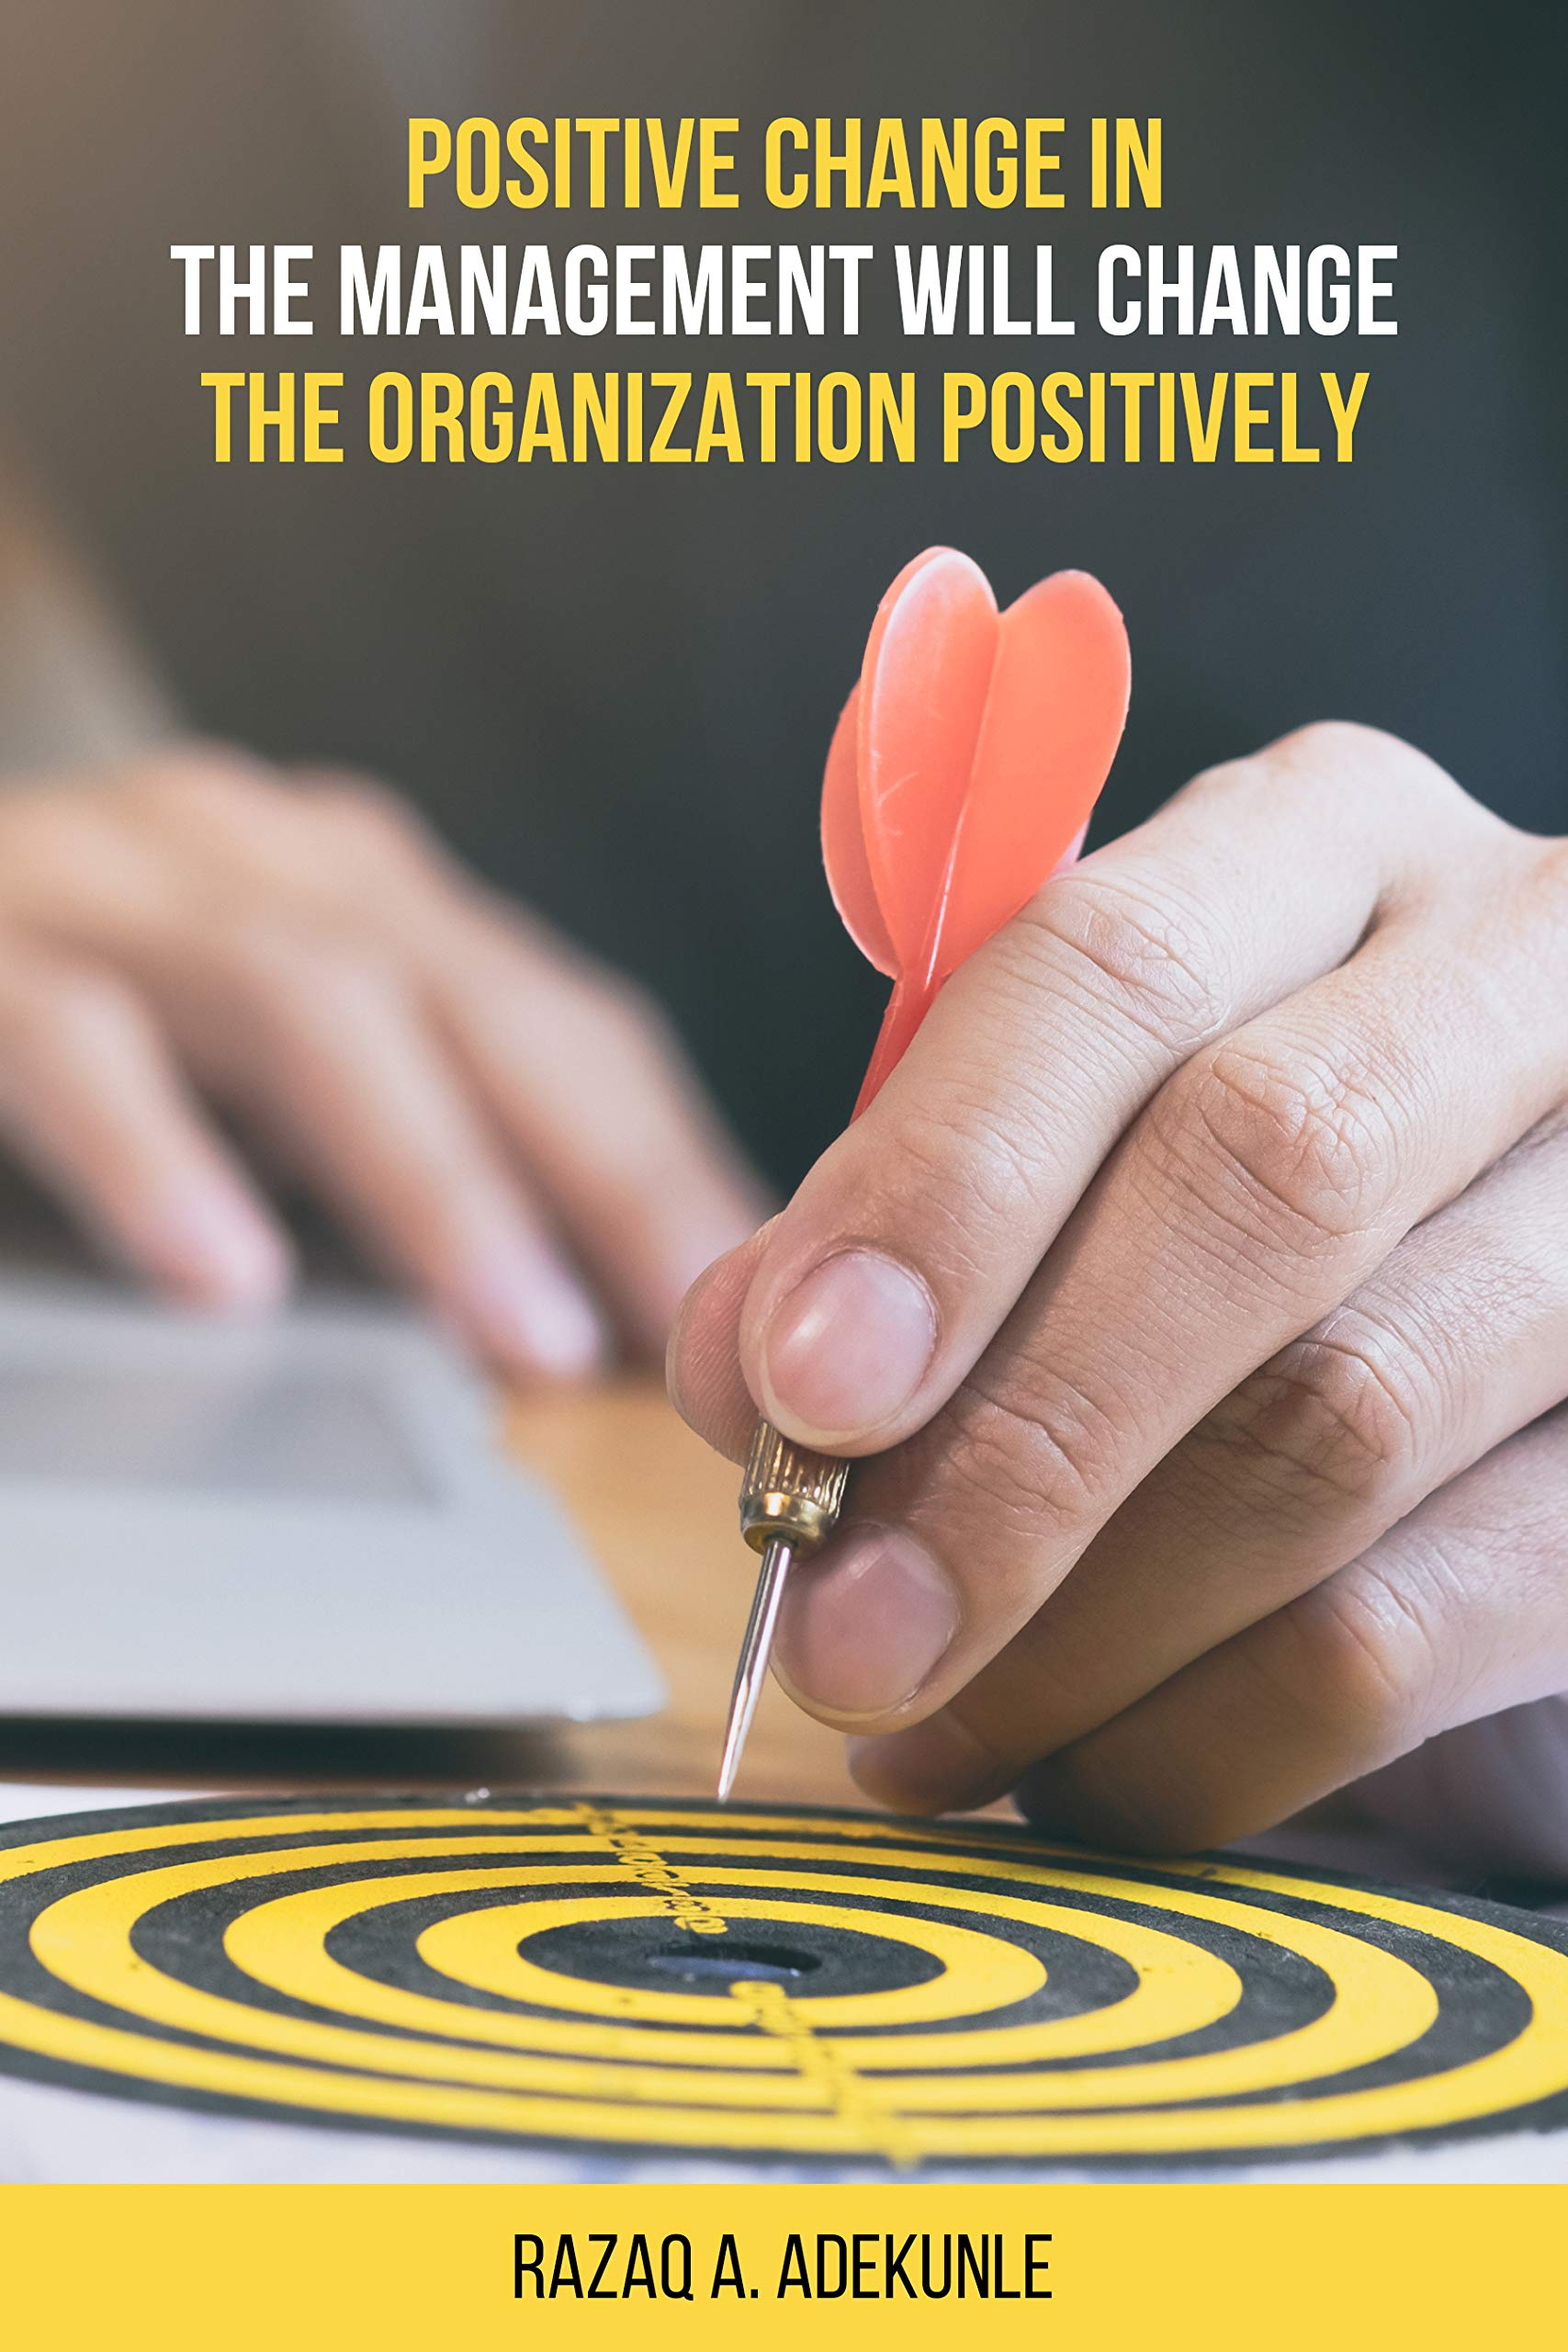 Positive Change in The Management Will Change The Organization Positively